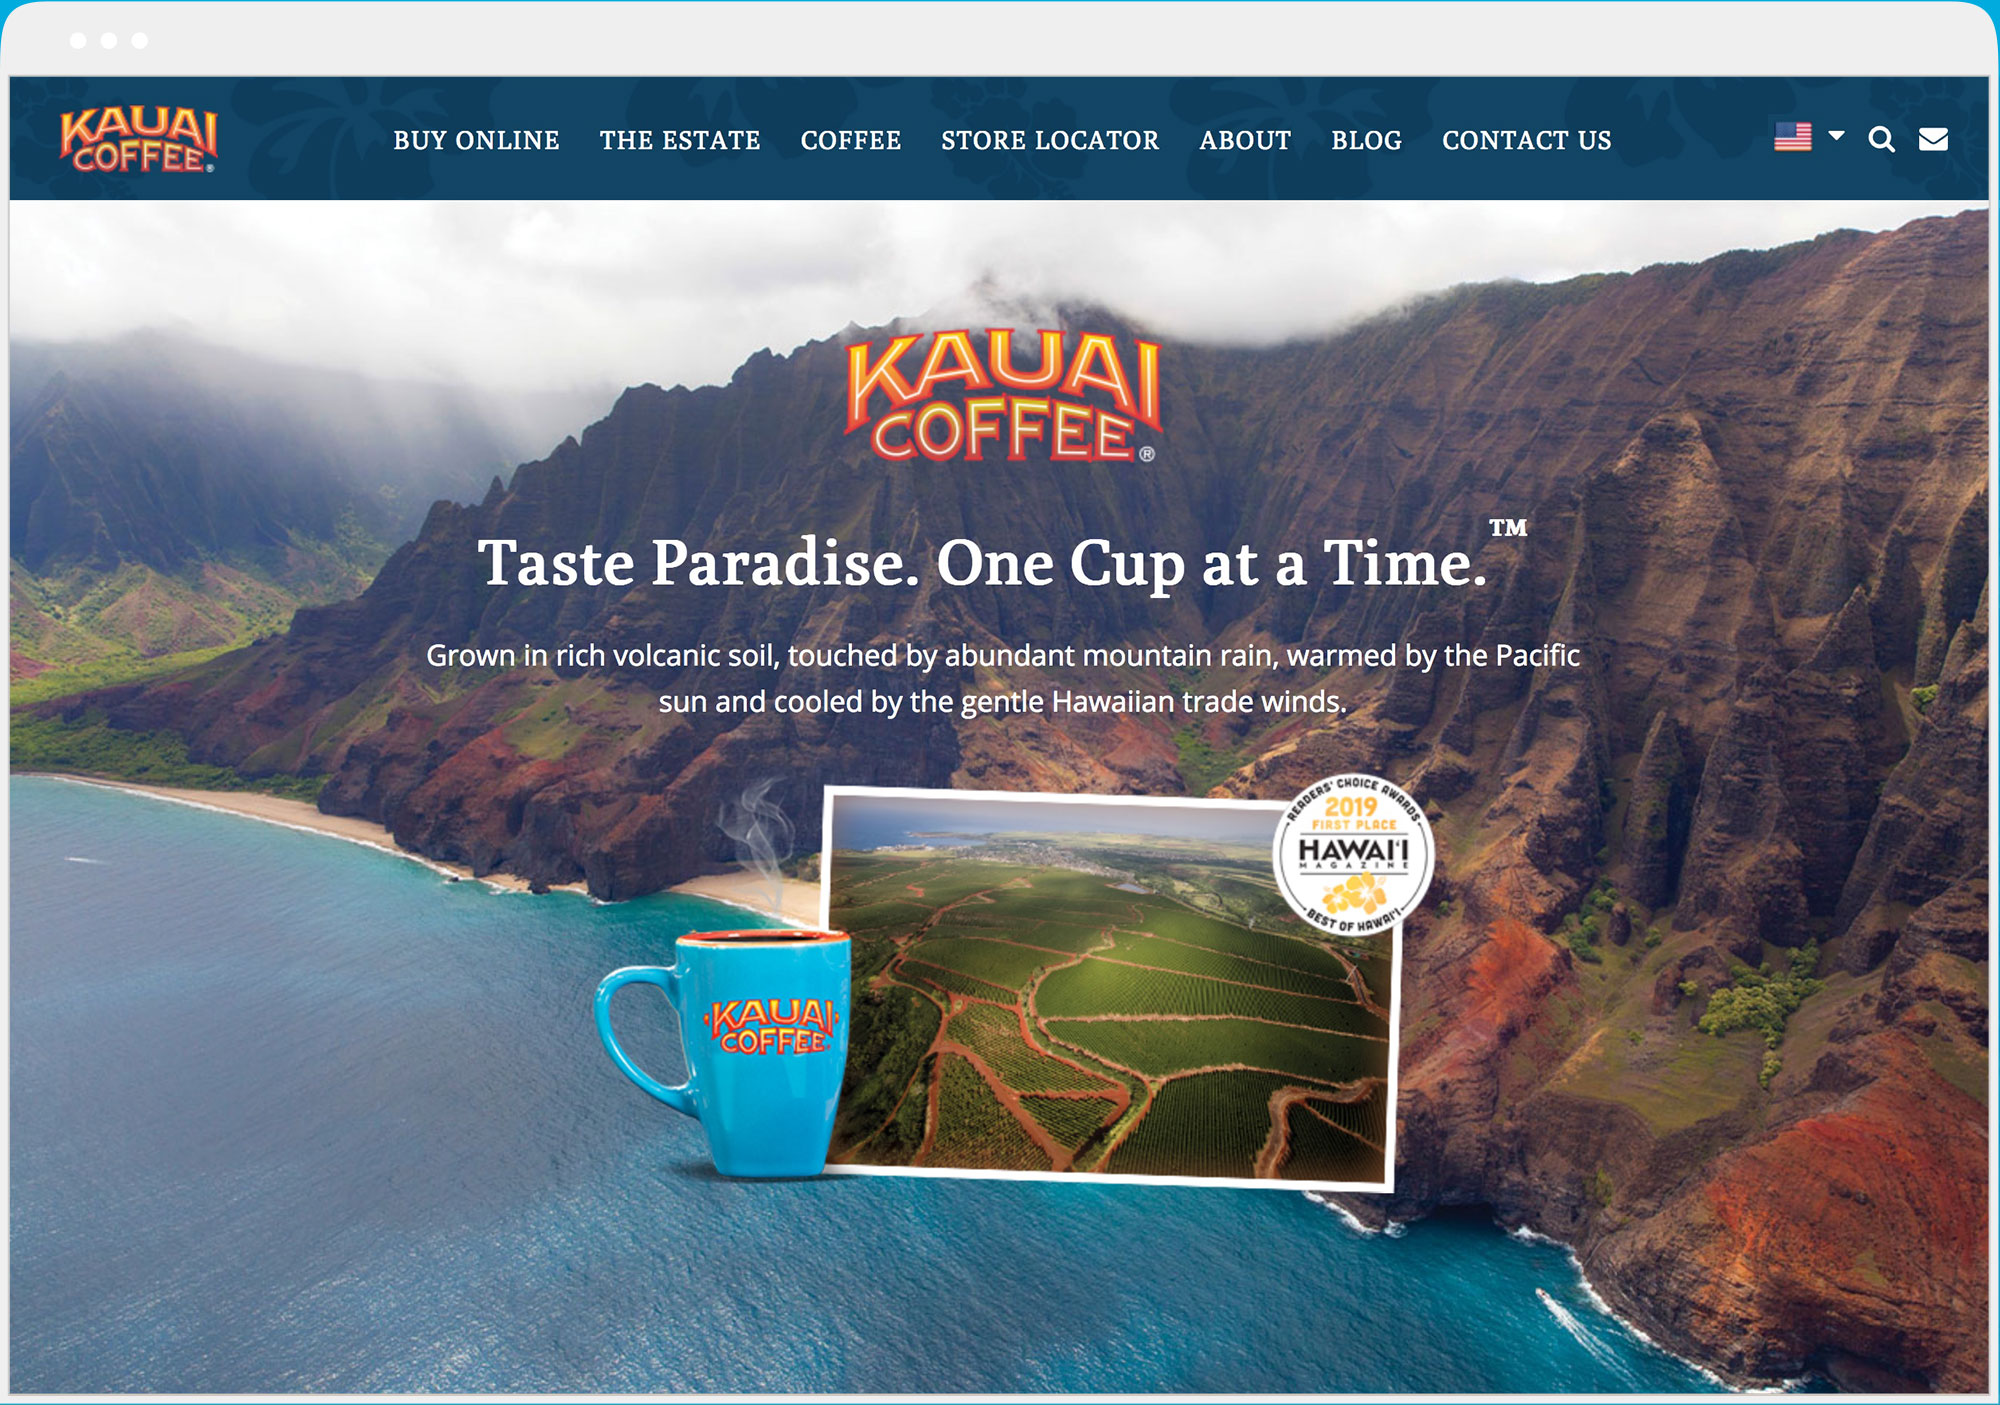 Kauai Coffee website desktop view